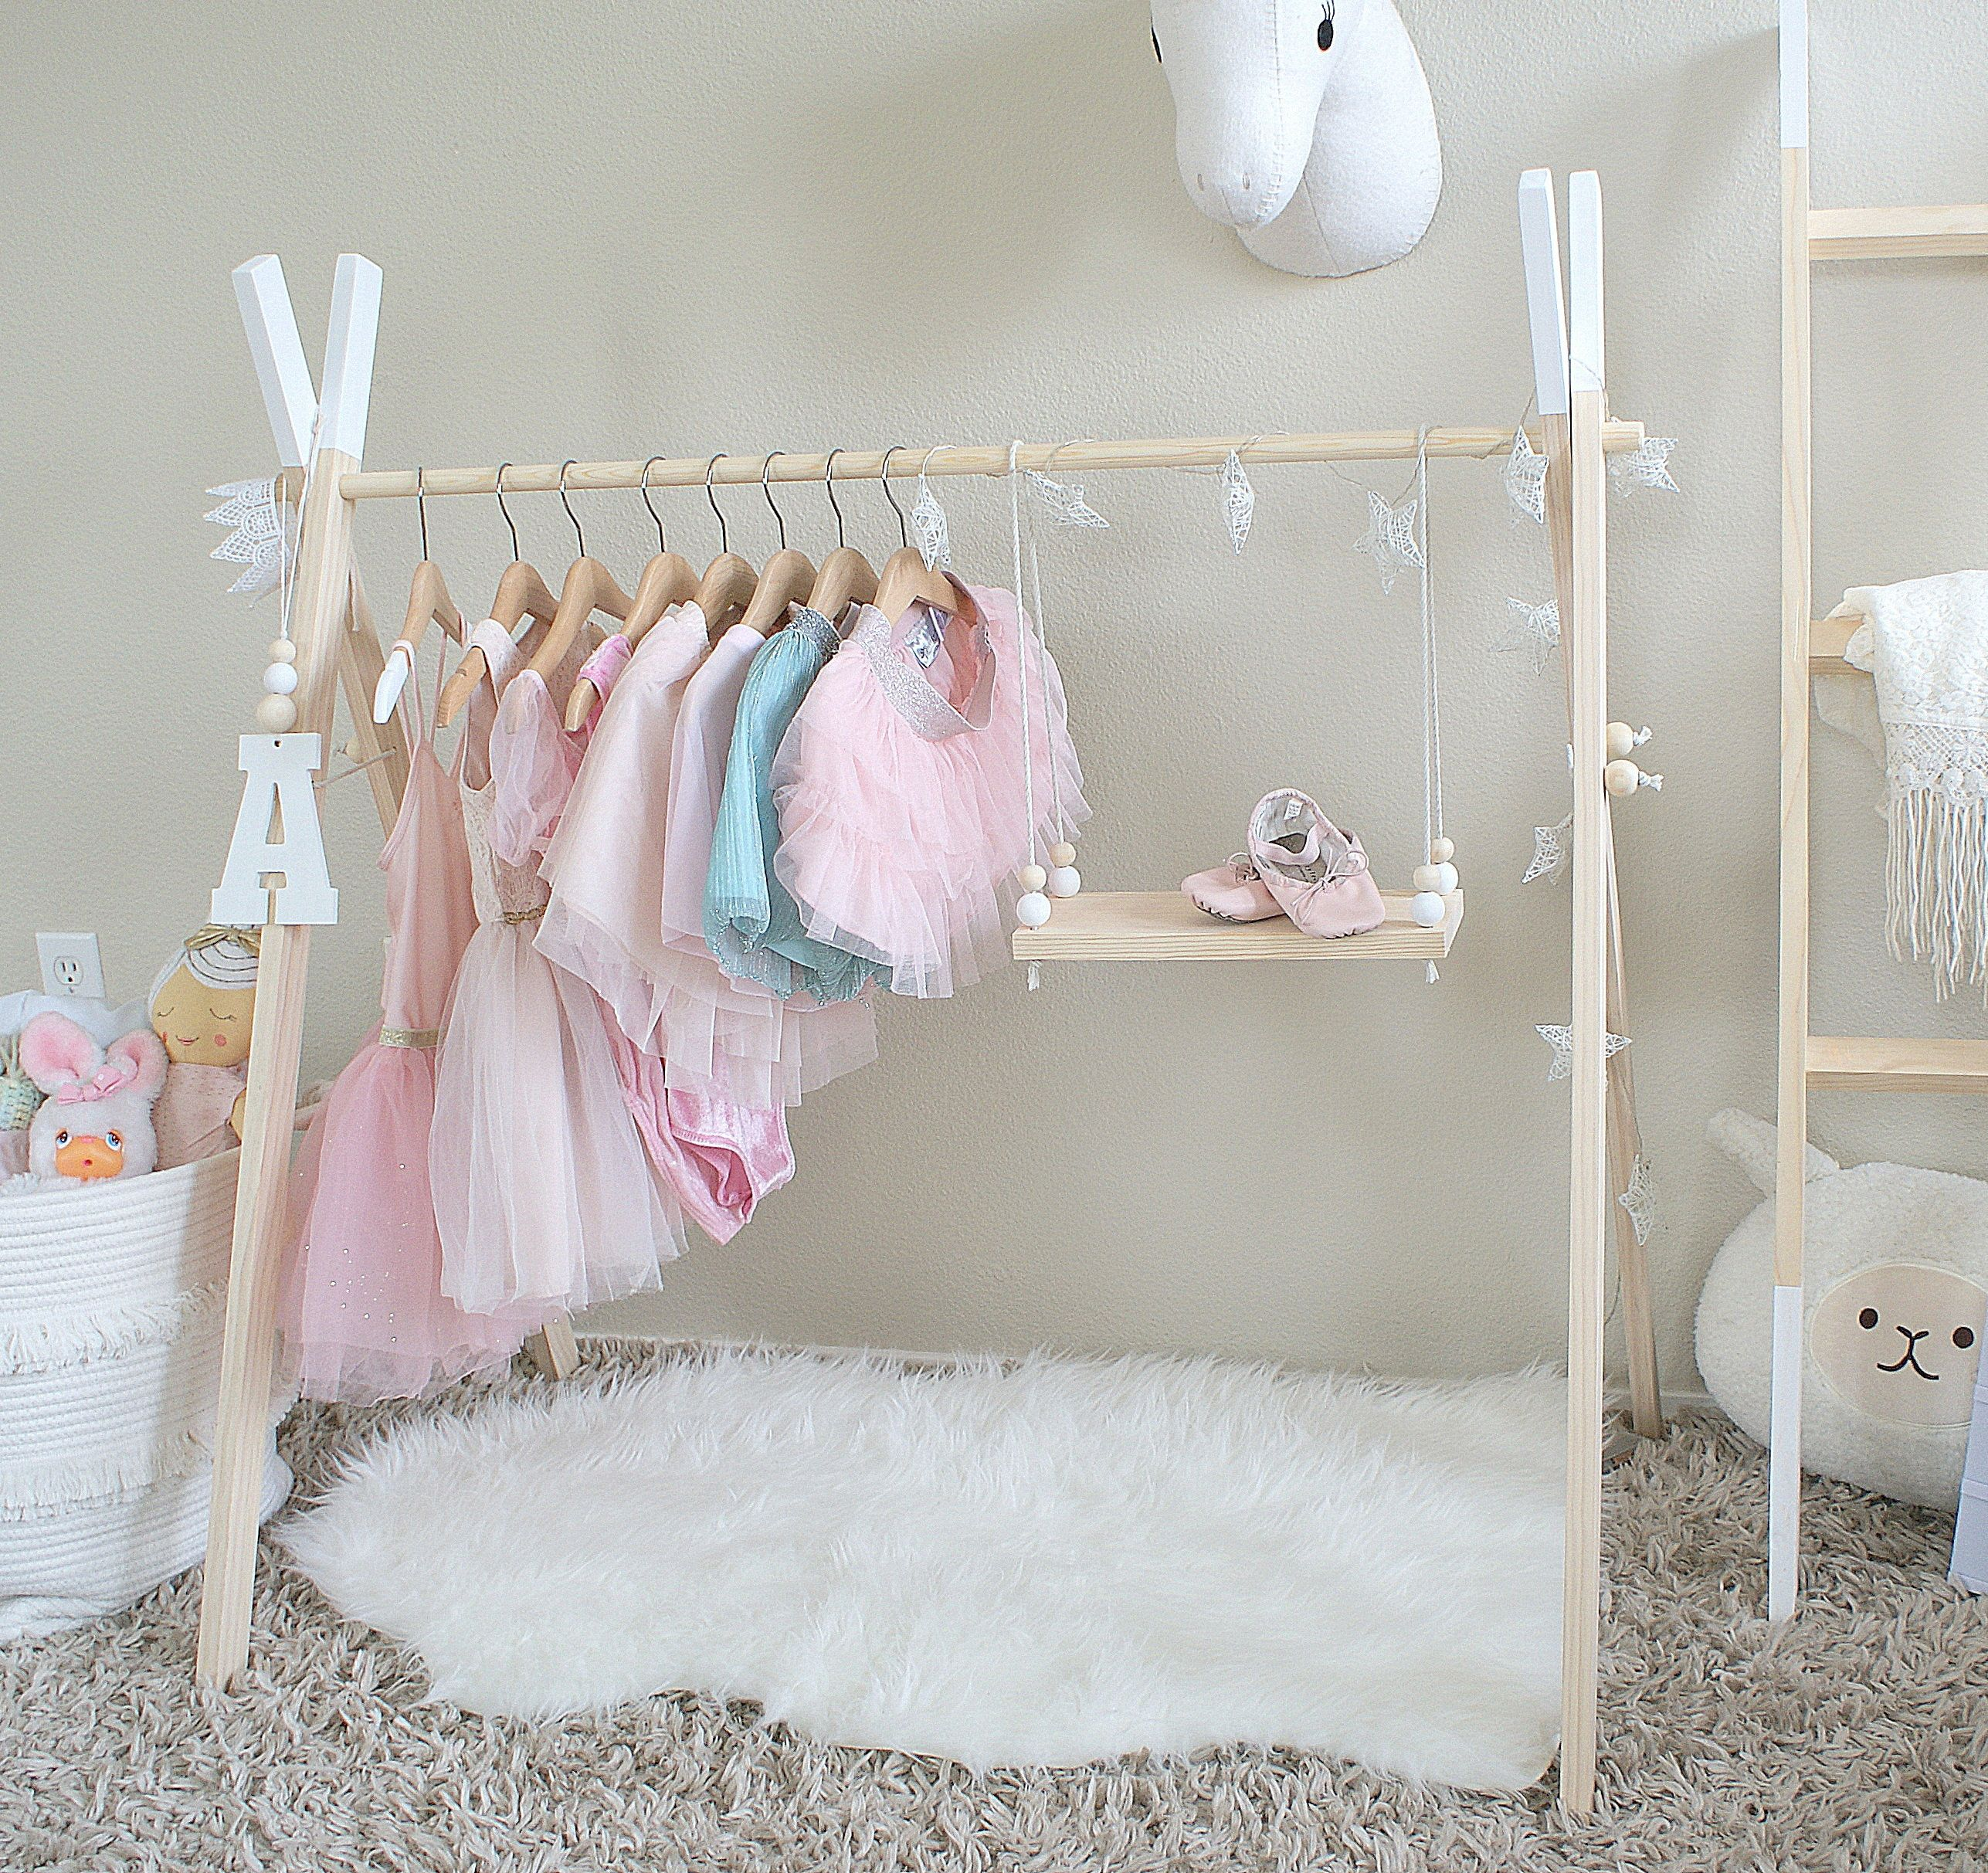 Pin by Abbi Pickard on Home show in 2020 | Baby clothes ...